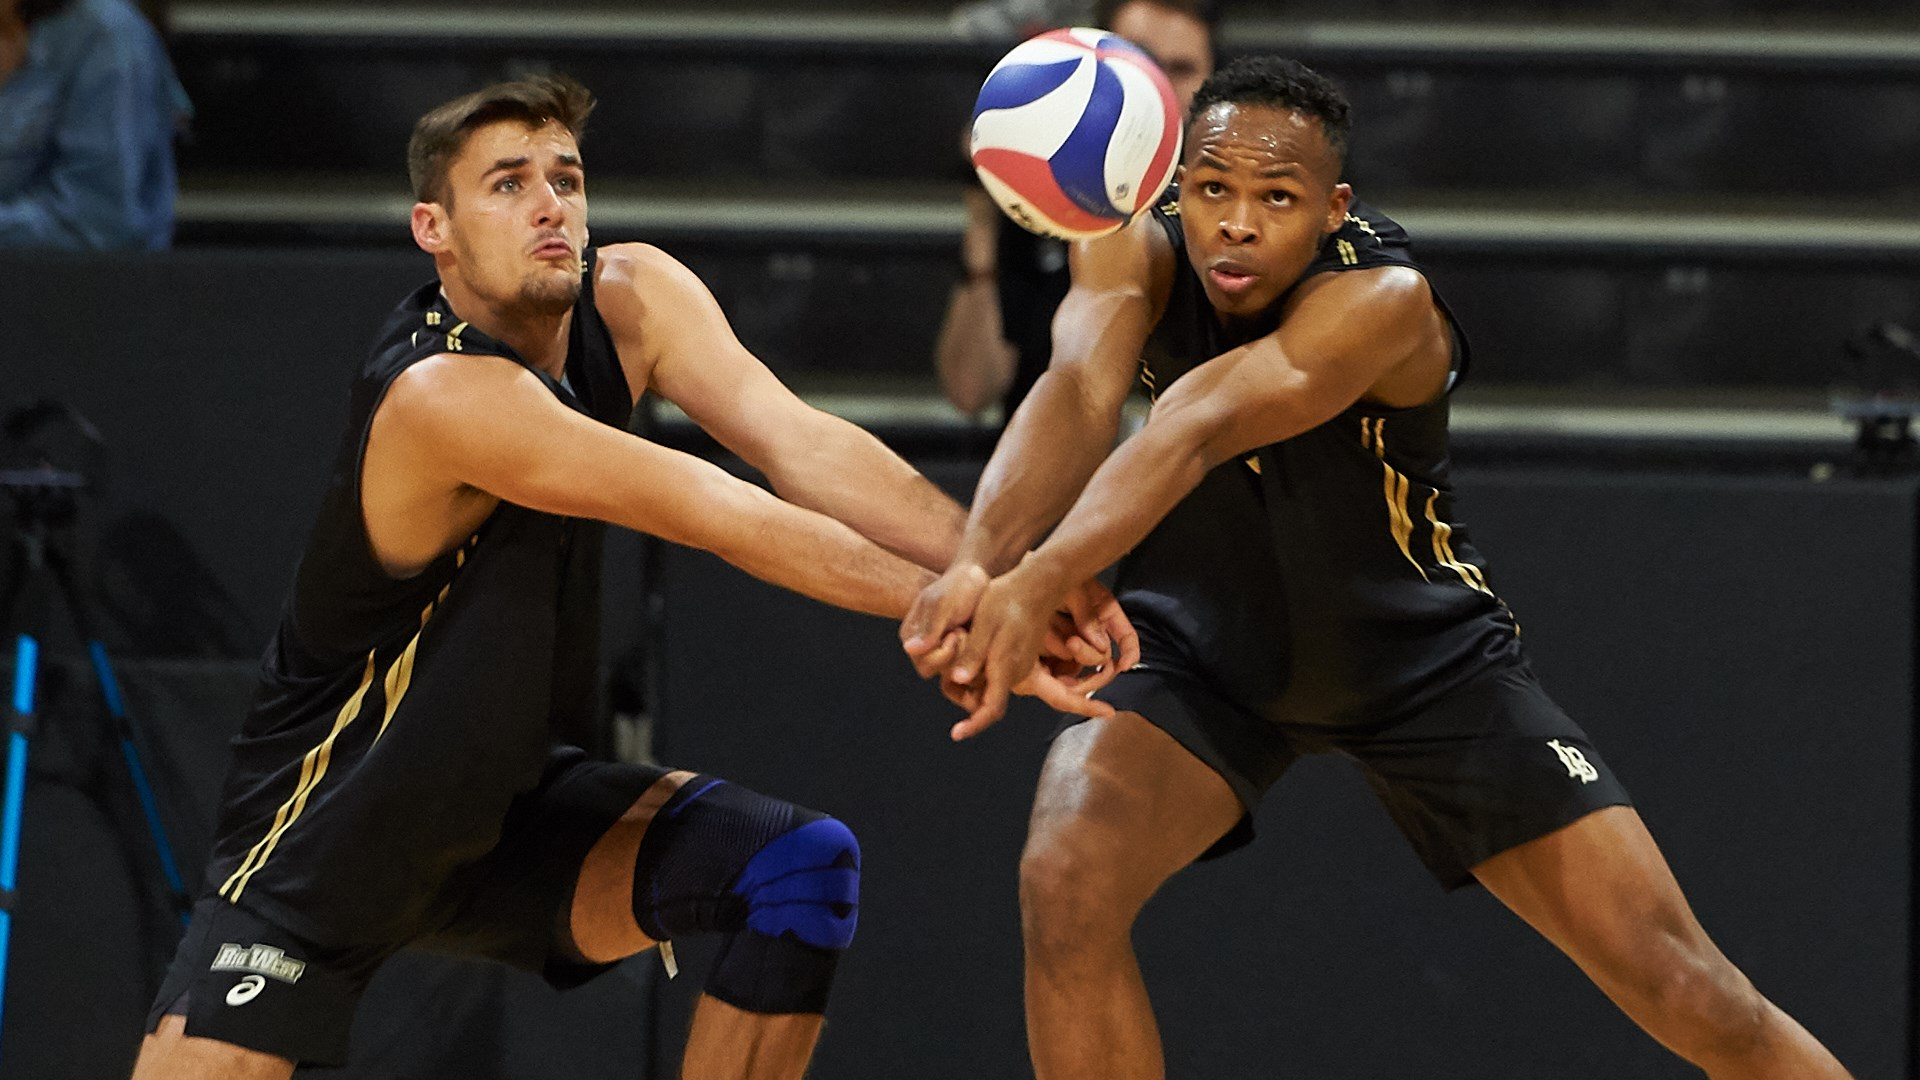 Louis Richard Men S Volleyball Long Beach State University Athletics